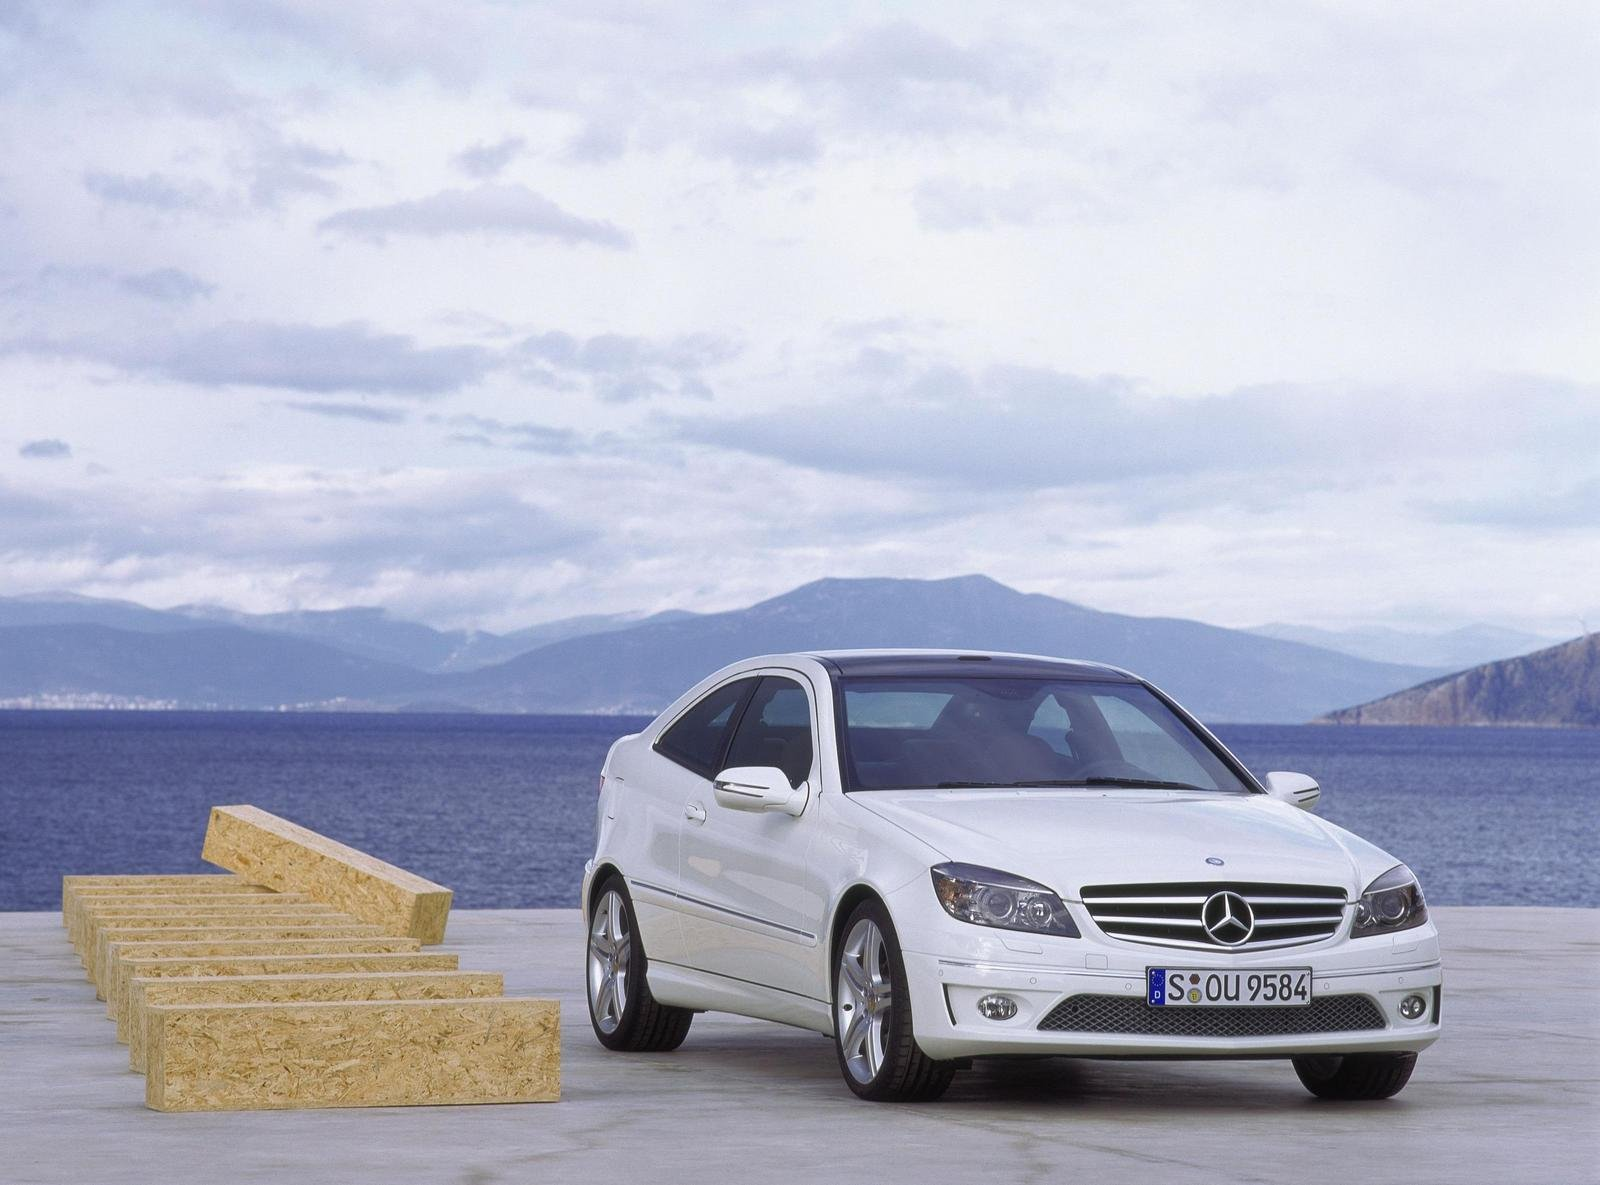 2009 mercedes clc picture 228676 car review top speed. Black Bedroom Furniture Sets. Home Design Ideas